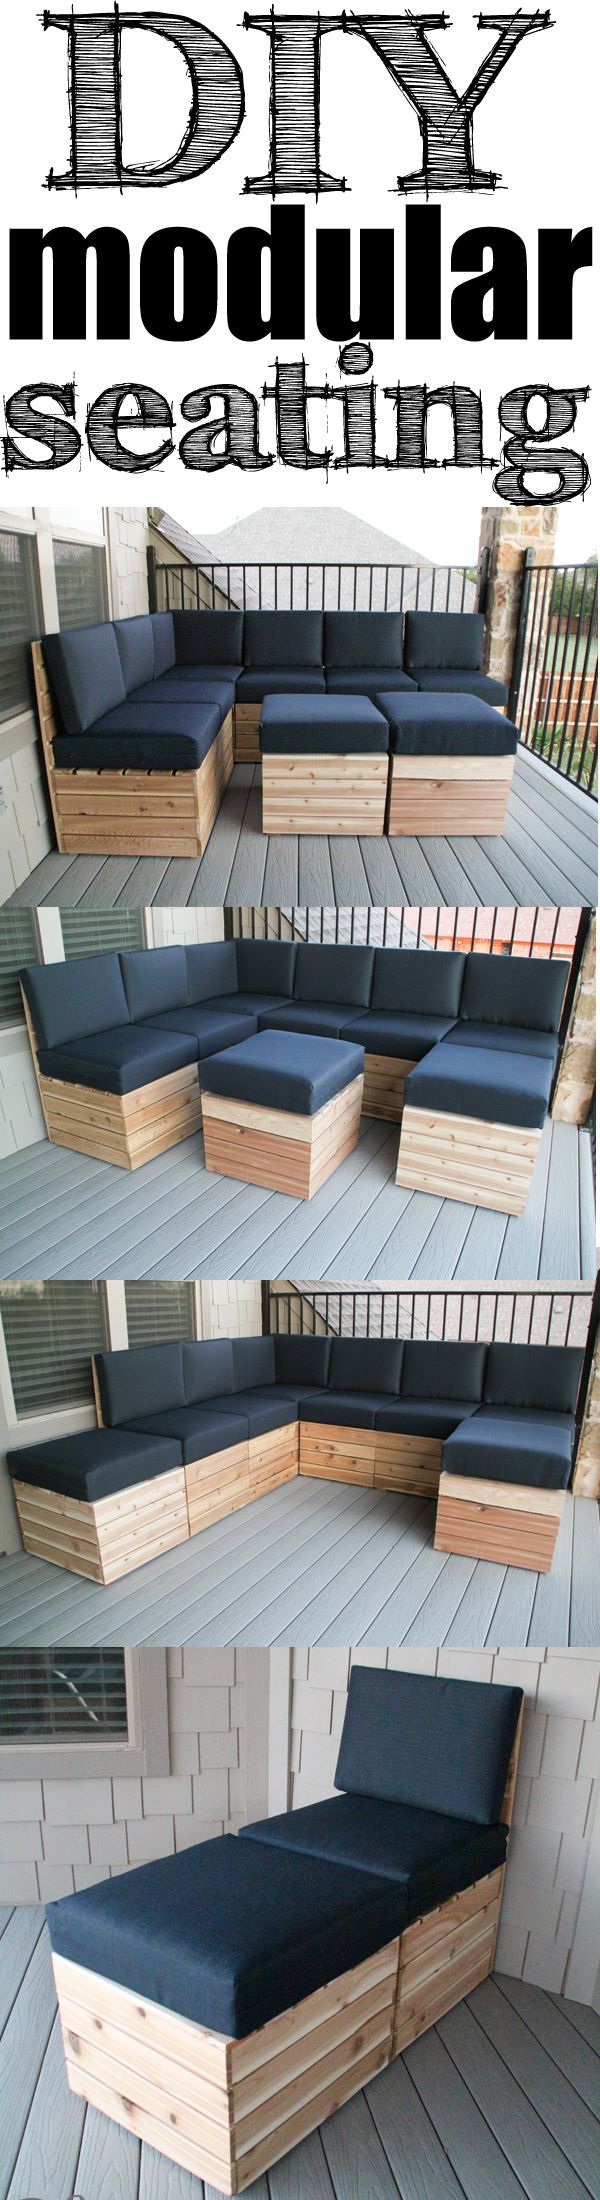 diy modular outdoor seating pinterest spaces easy and free